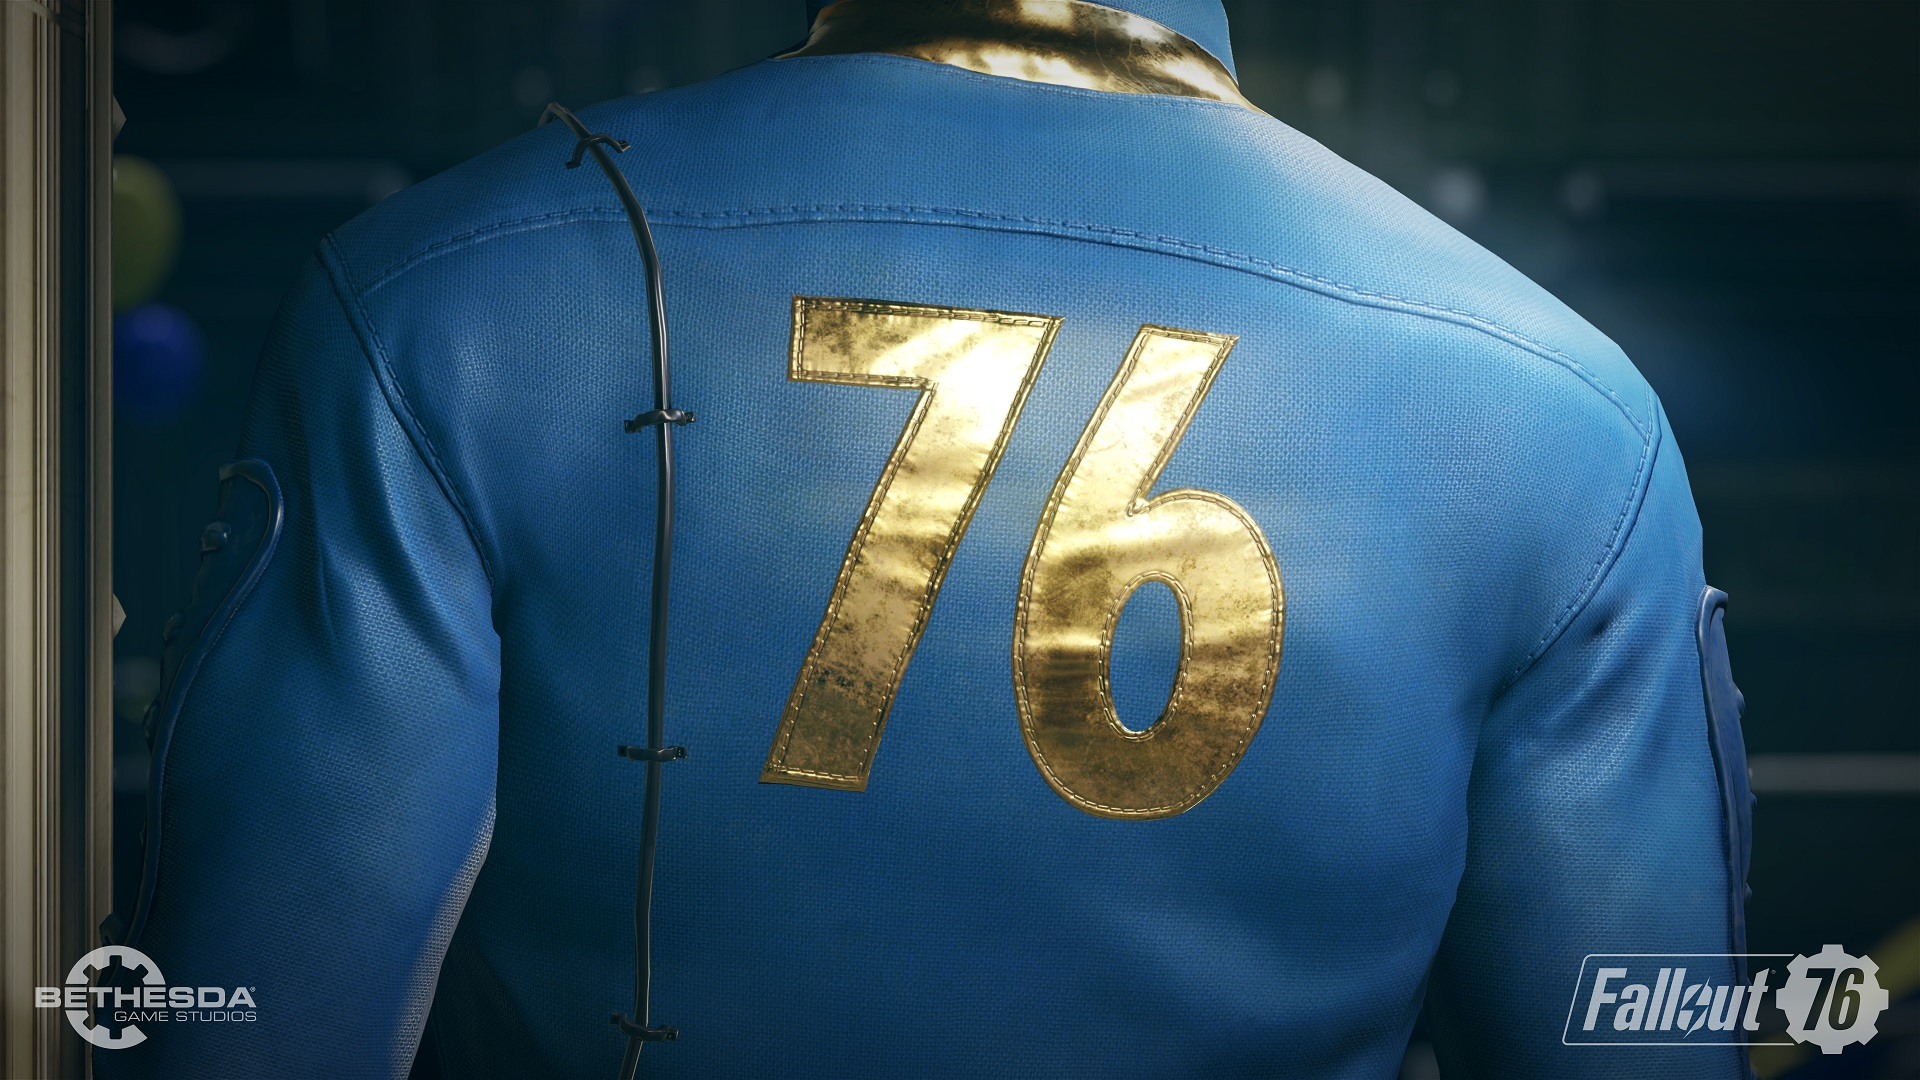 Bethesda Attempt To Make Amends After Fallout 76 Disaster